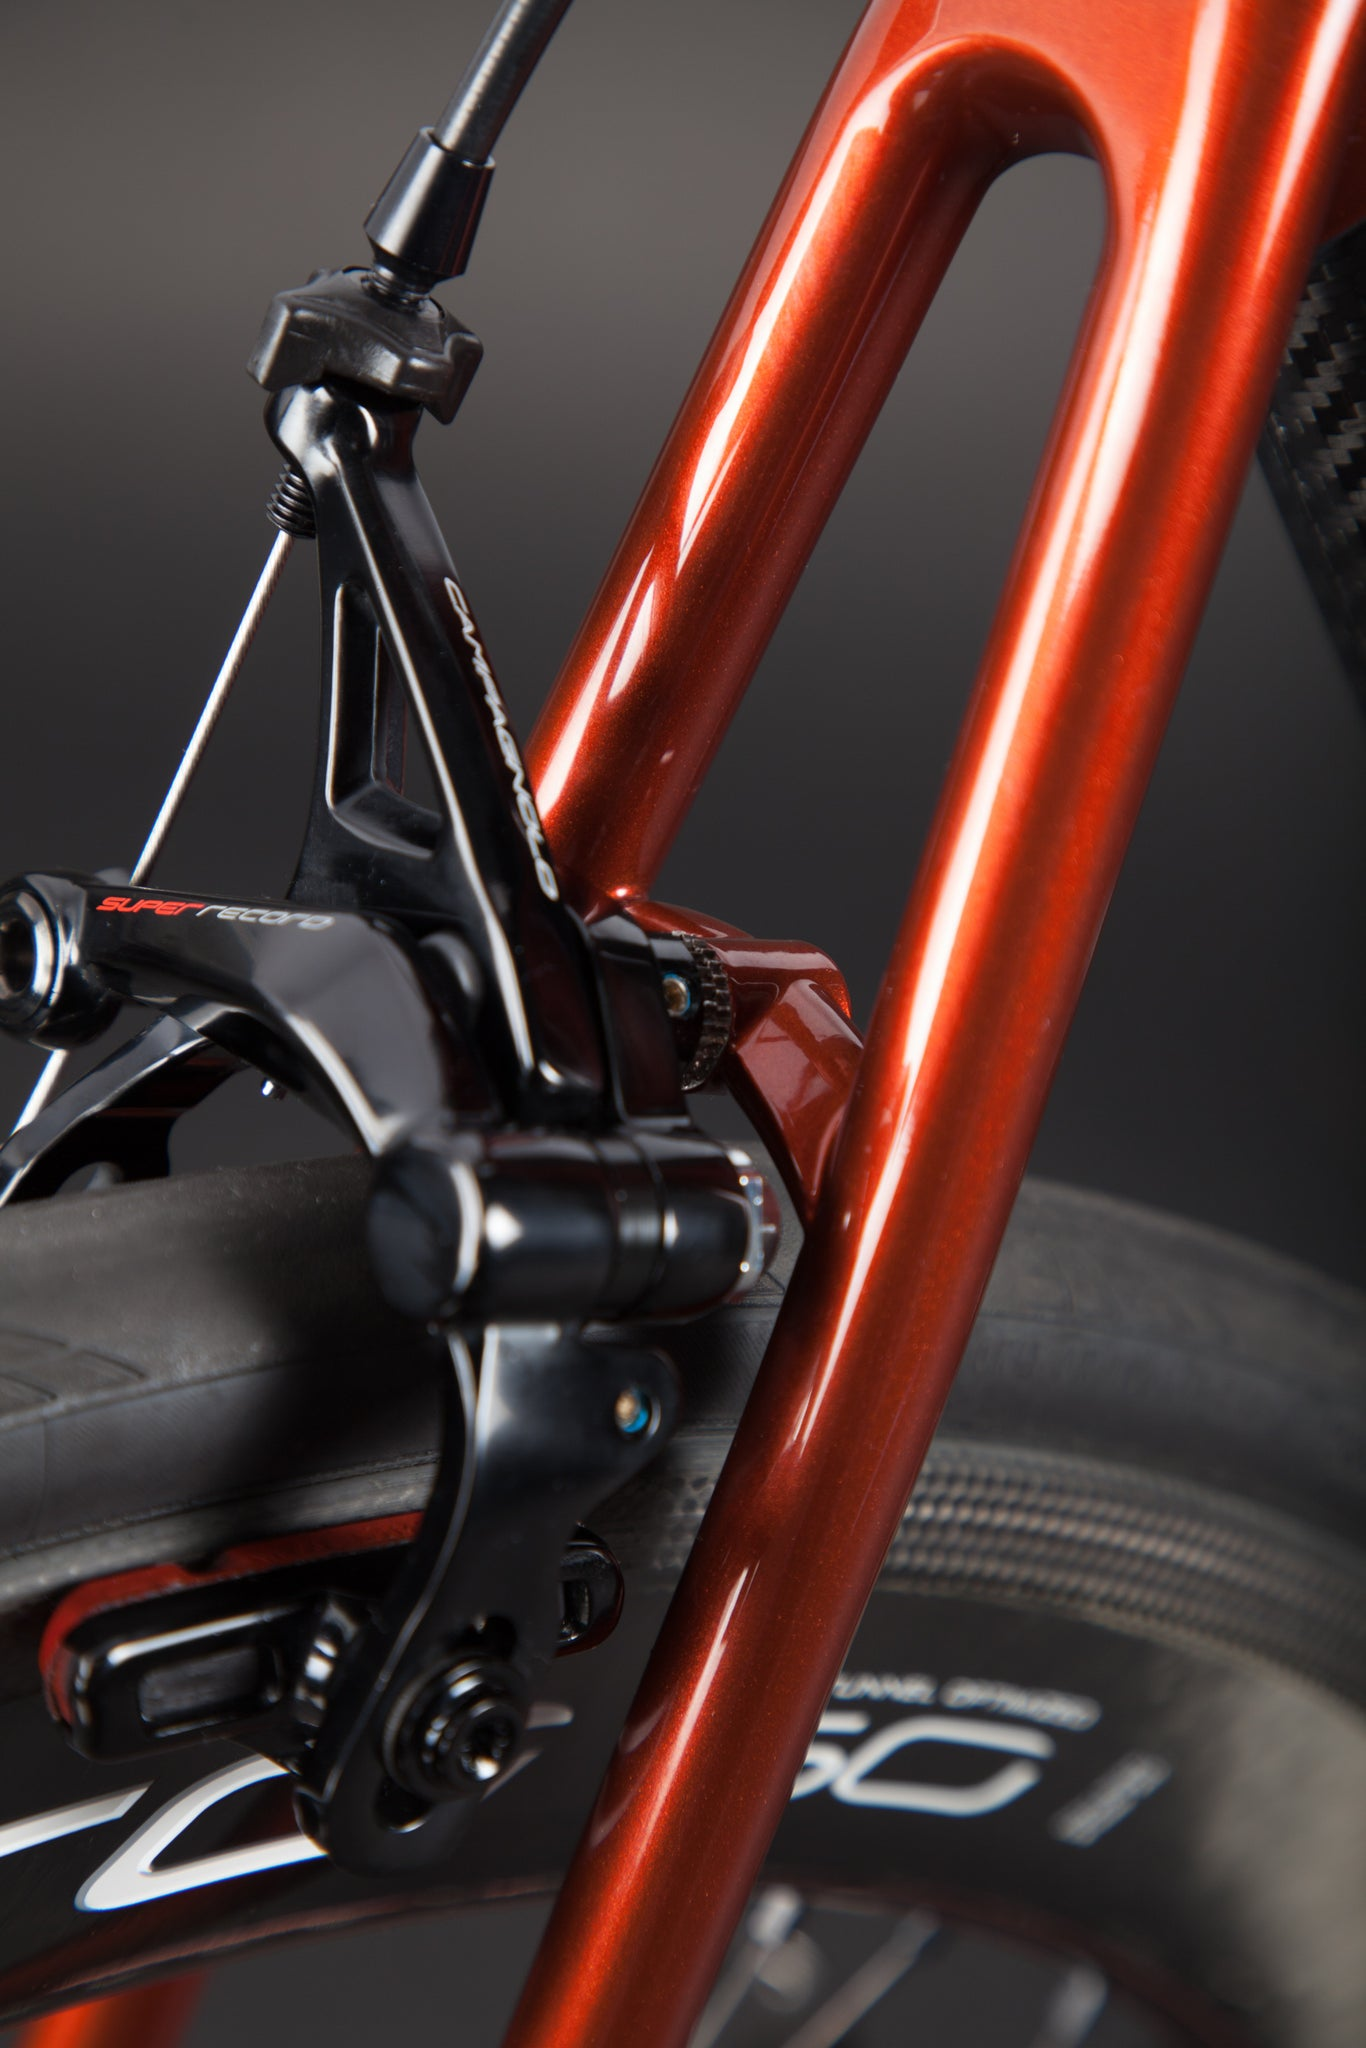 chad's prova speciale brake bridge seatstays